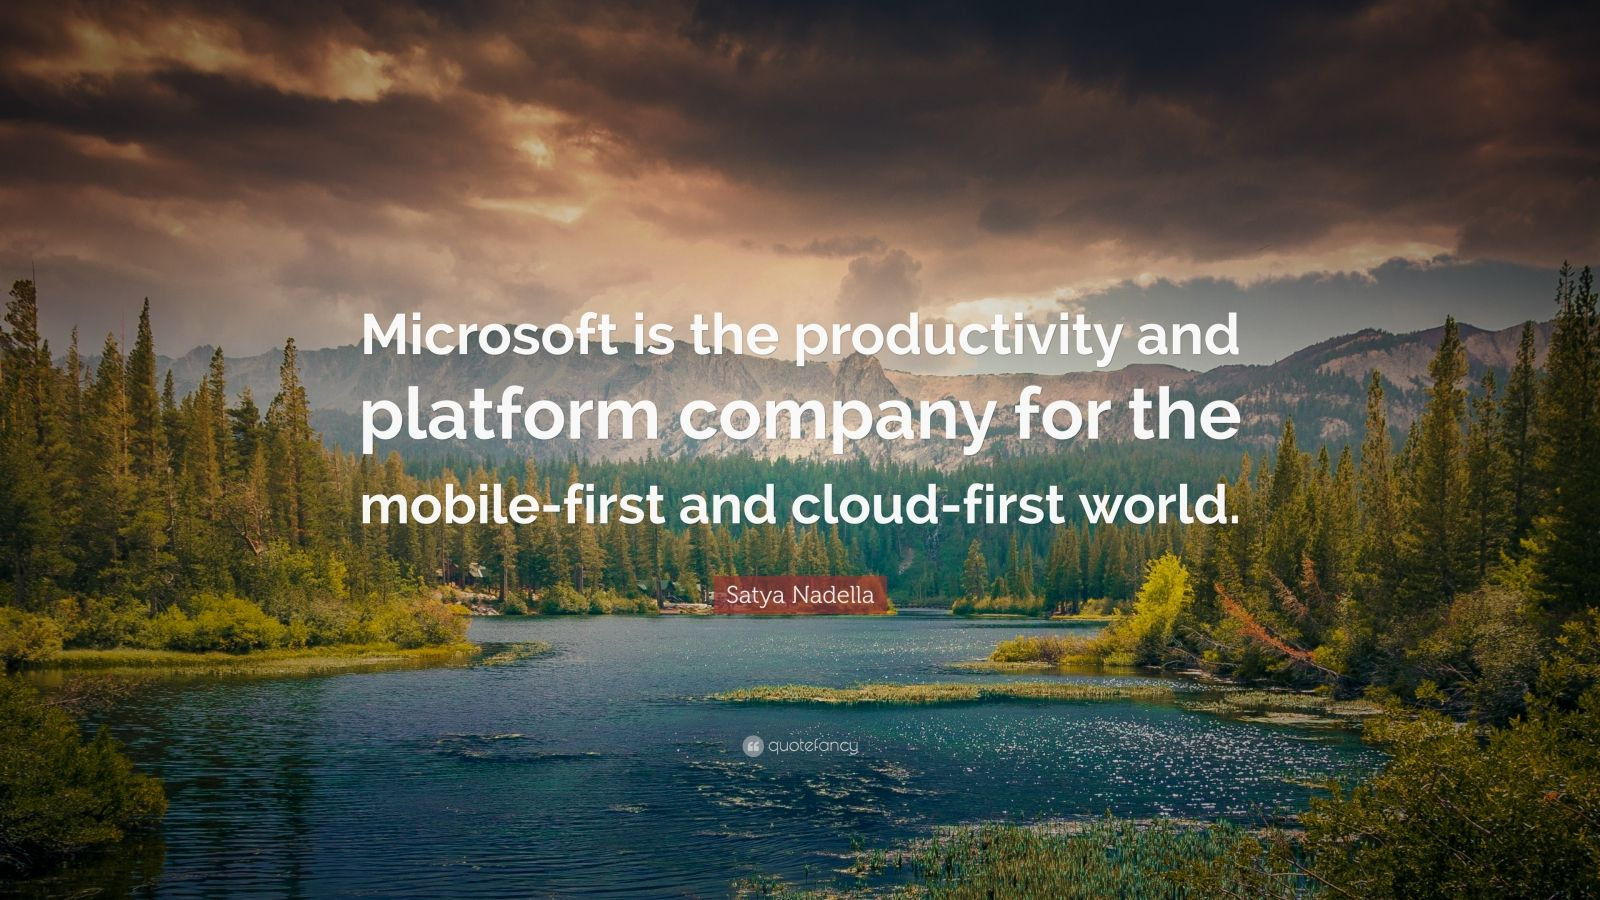 """Satya Nadella Quote: """"Microsoft is the productivity and platform company for the mobile-first and cloud-first world."""""""